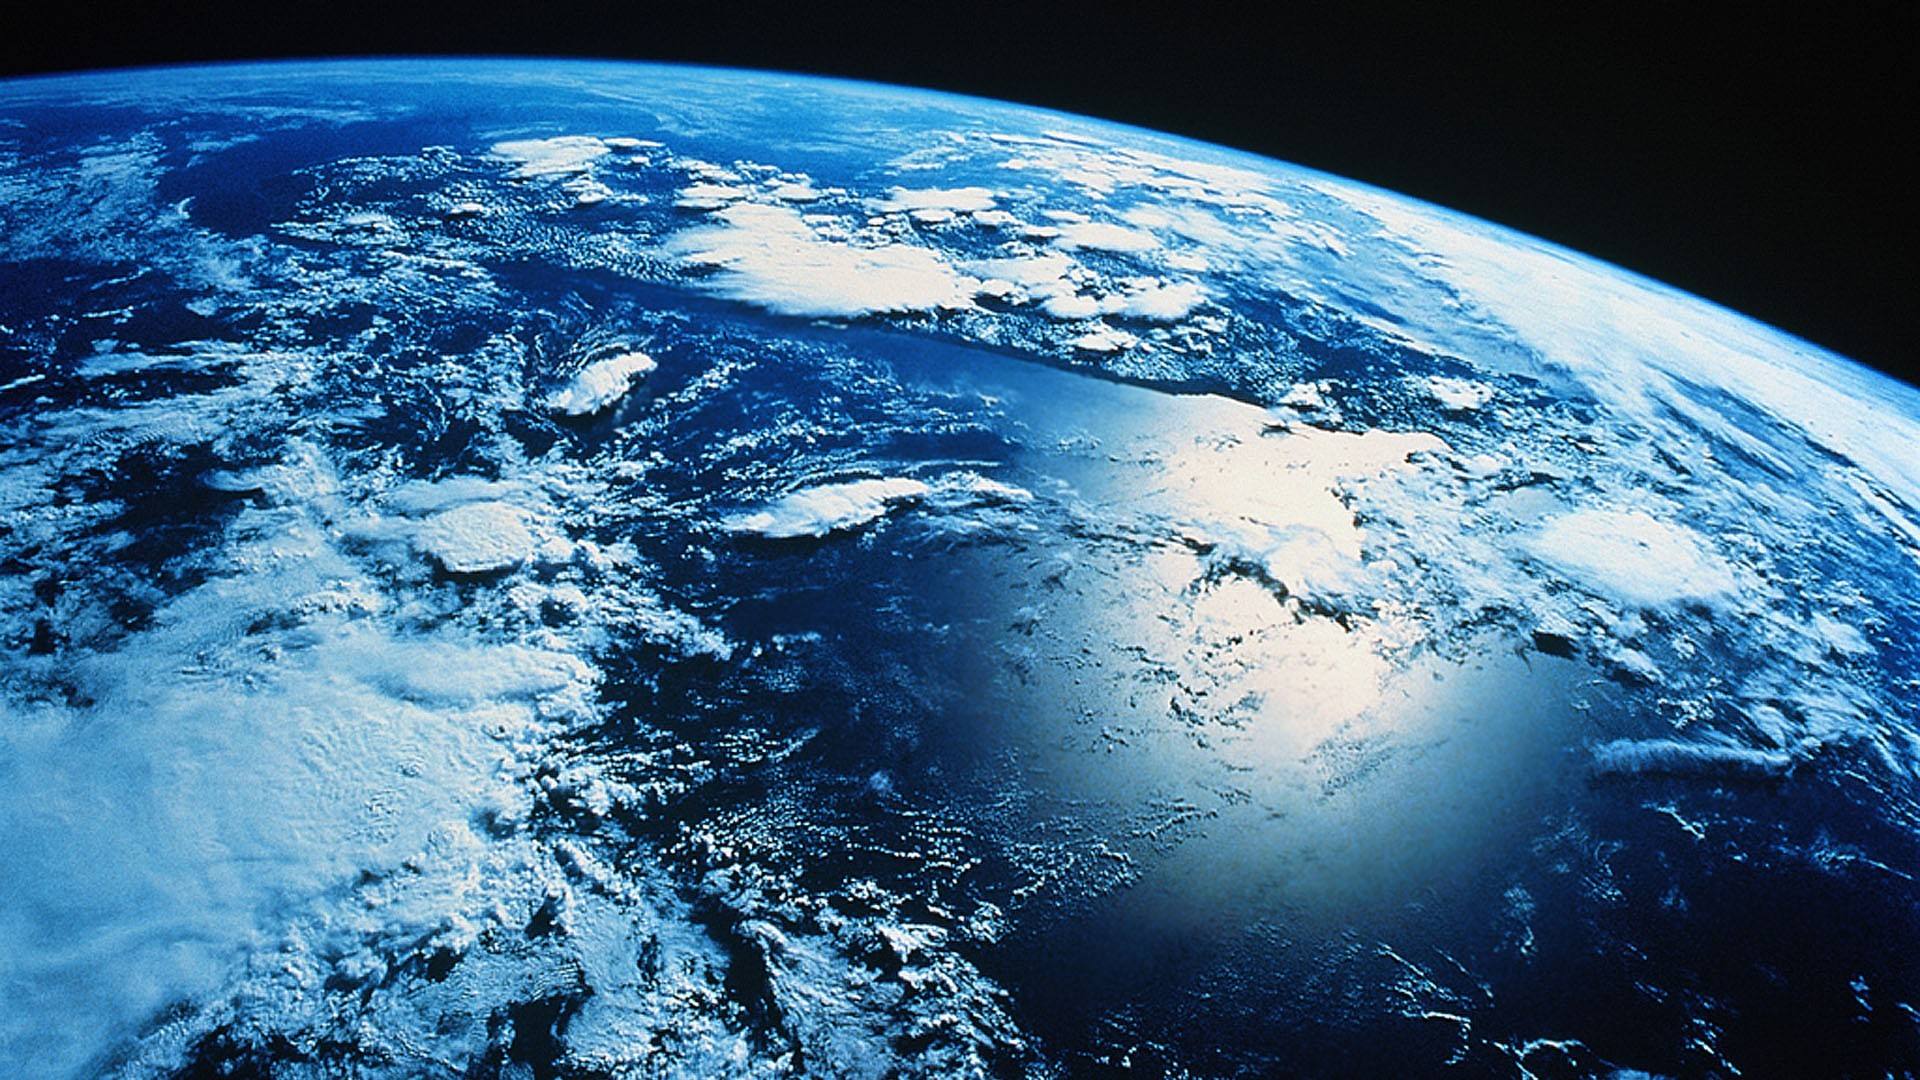 46500 download wallpaper Landscape, Planets screensavers and pictures for free